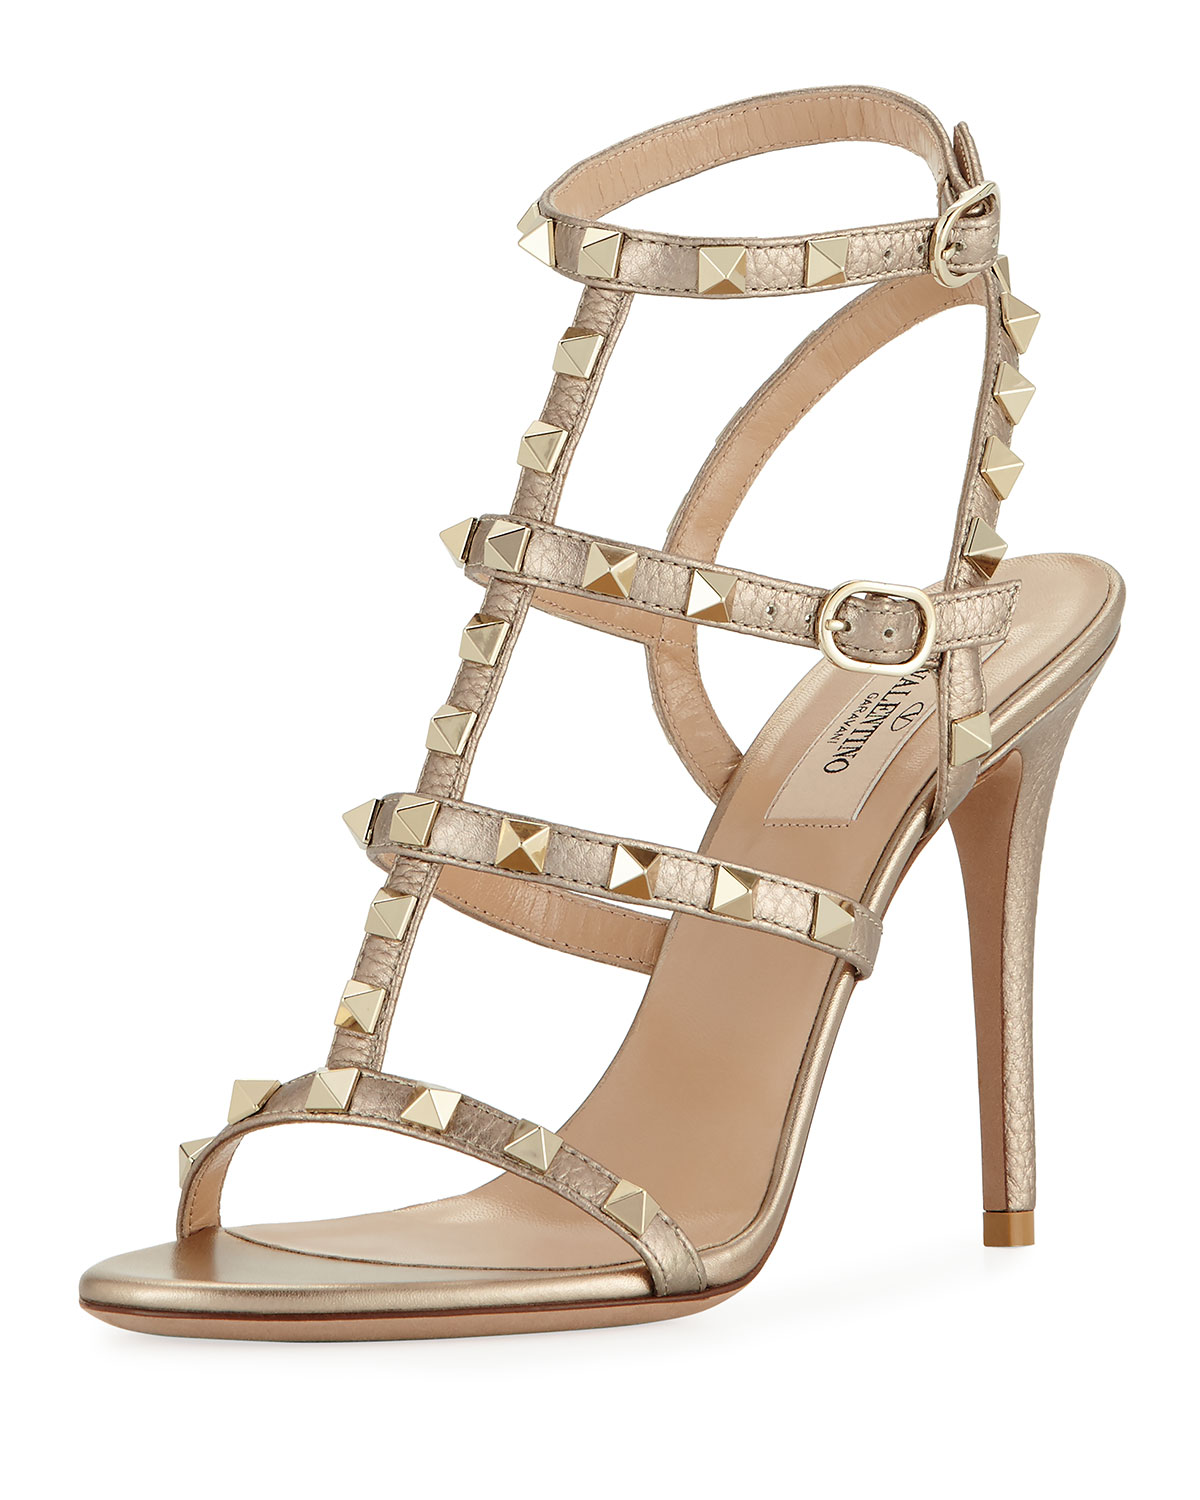 shoes of valentino pumps fab hottest stud year rockstud the rock